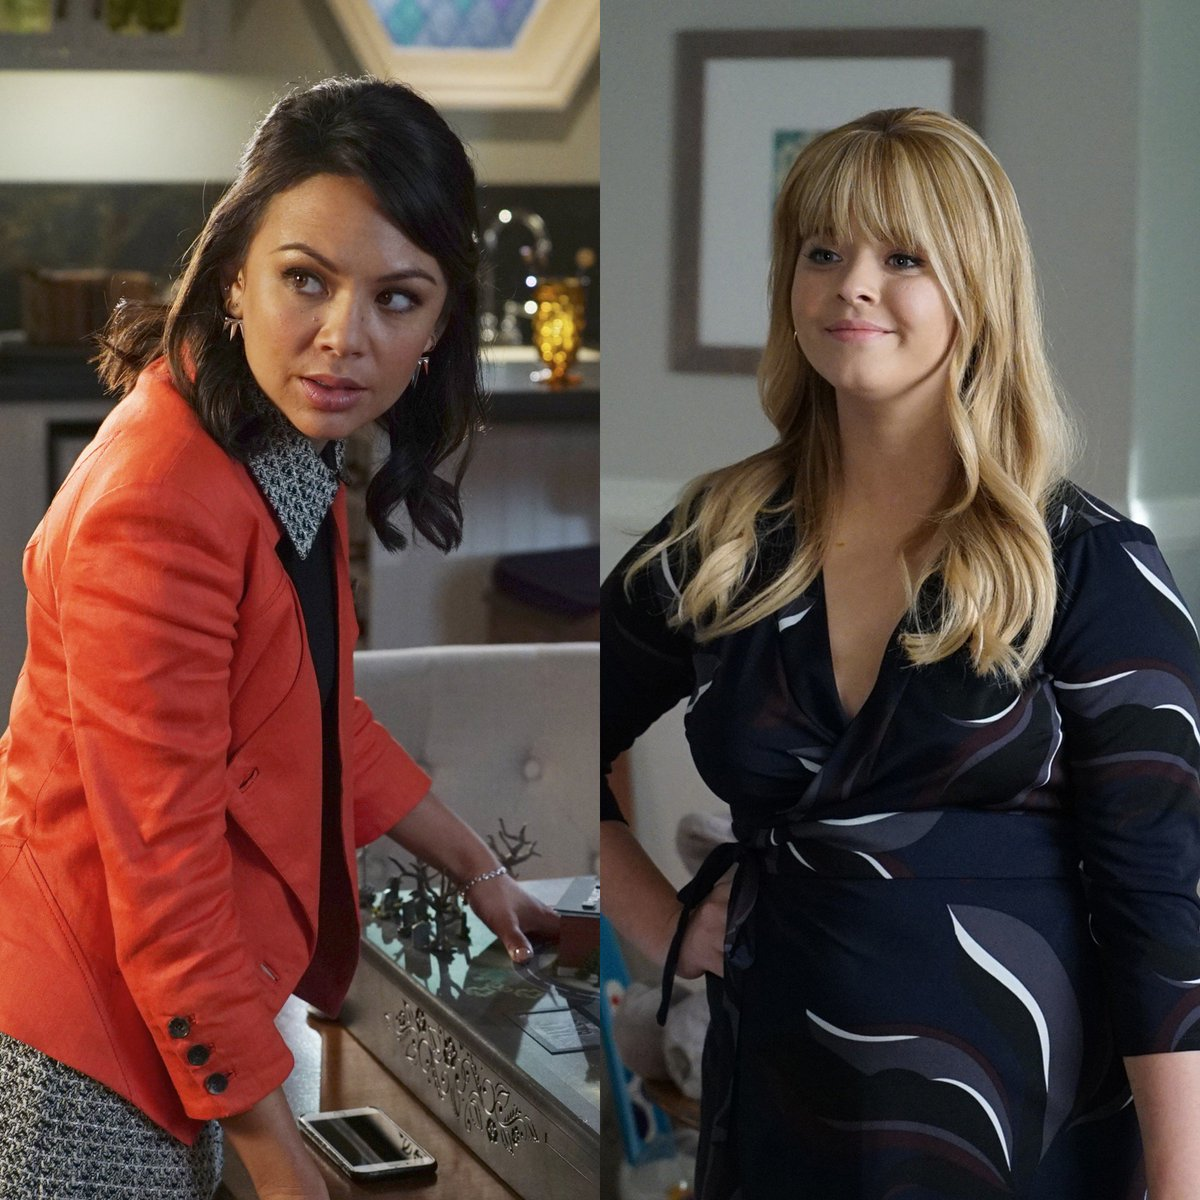 Freeform is developing spinoff pilot #PrettyLittleLiars: The Perfectionists starring @SashaaPieterse &  @JanelParrishhttps://t.co/TApBW6tUV2